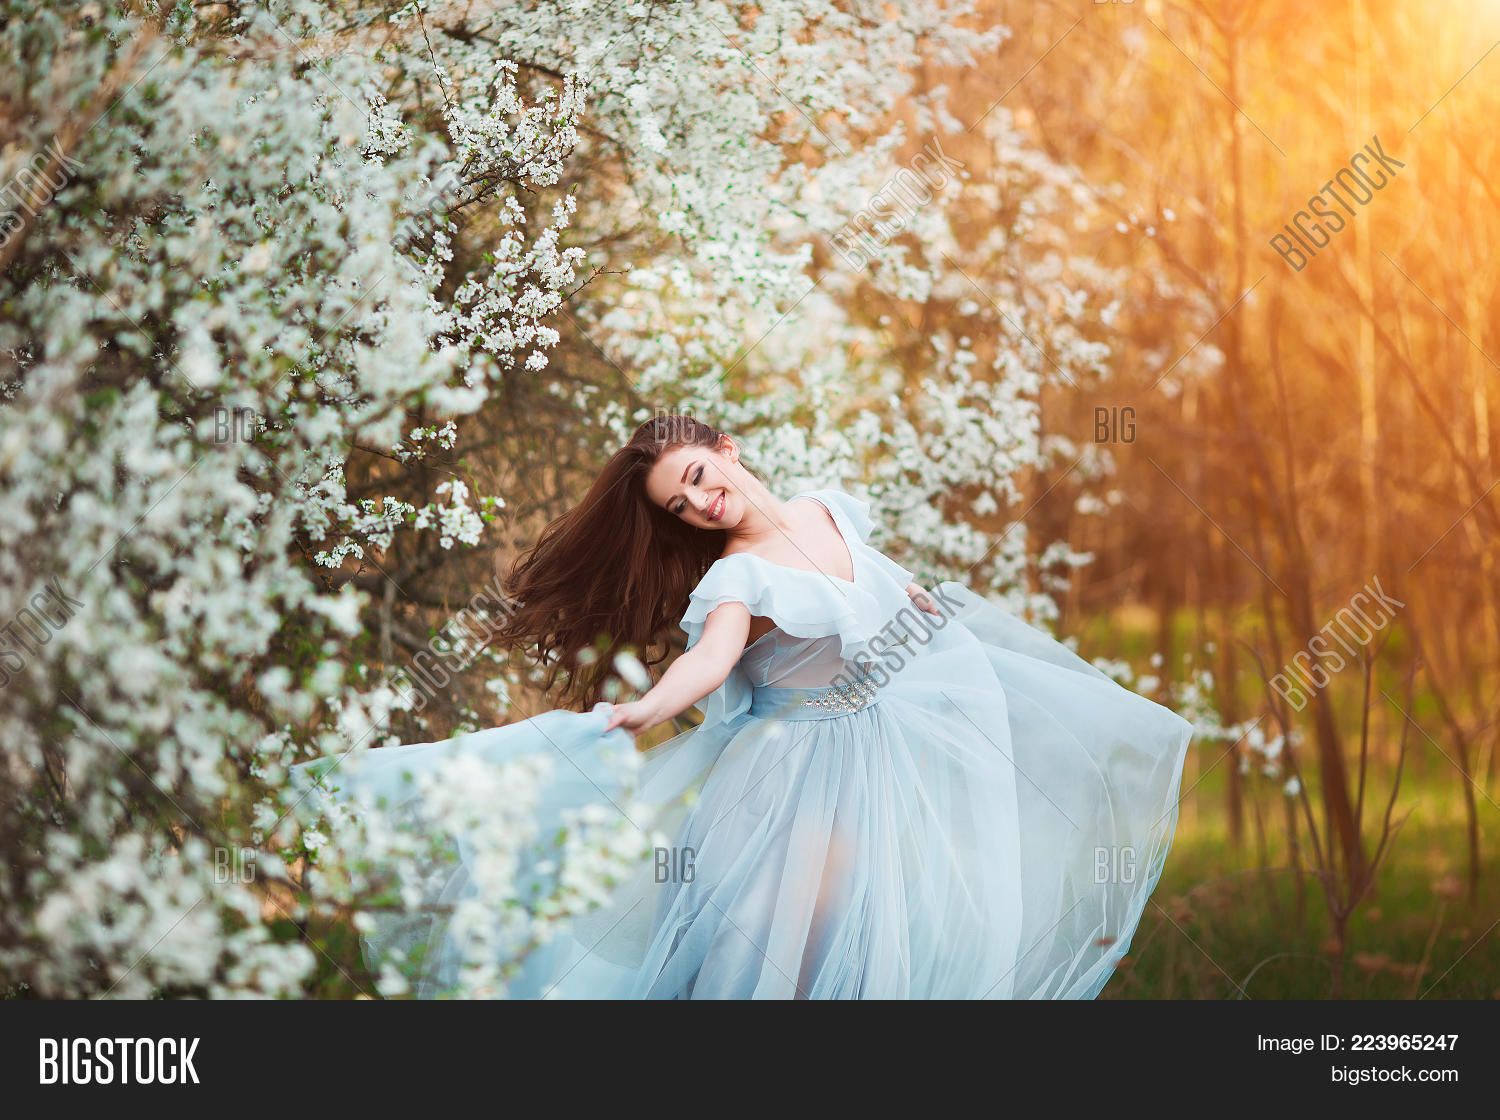 Beauty Girl Outdoors Image Photo Free Trial Bigstock